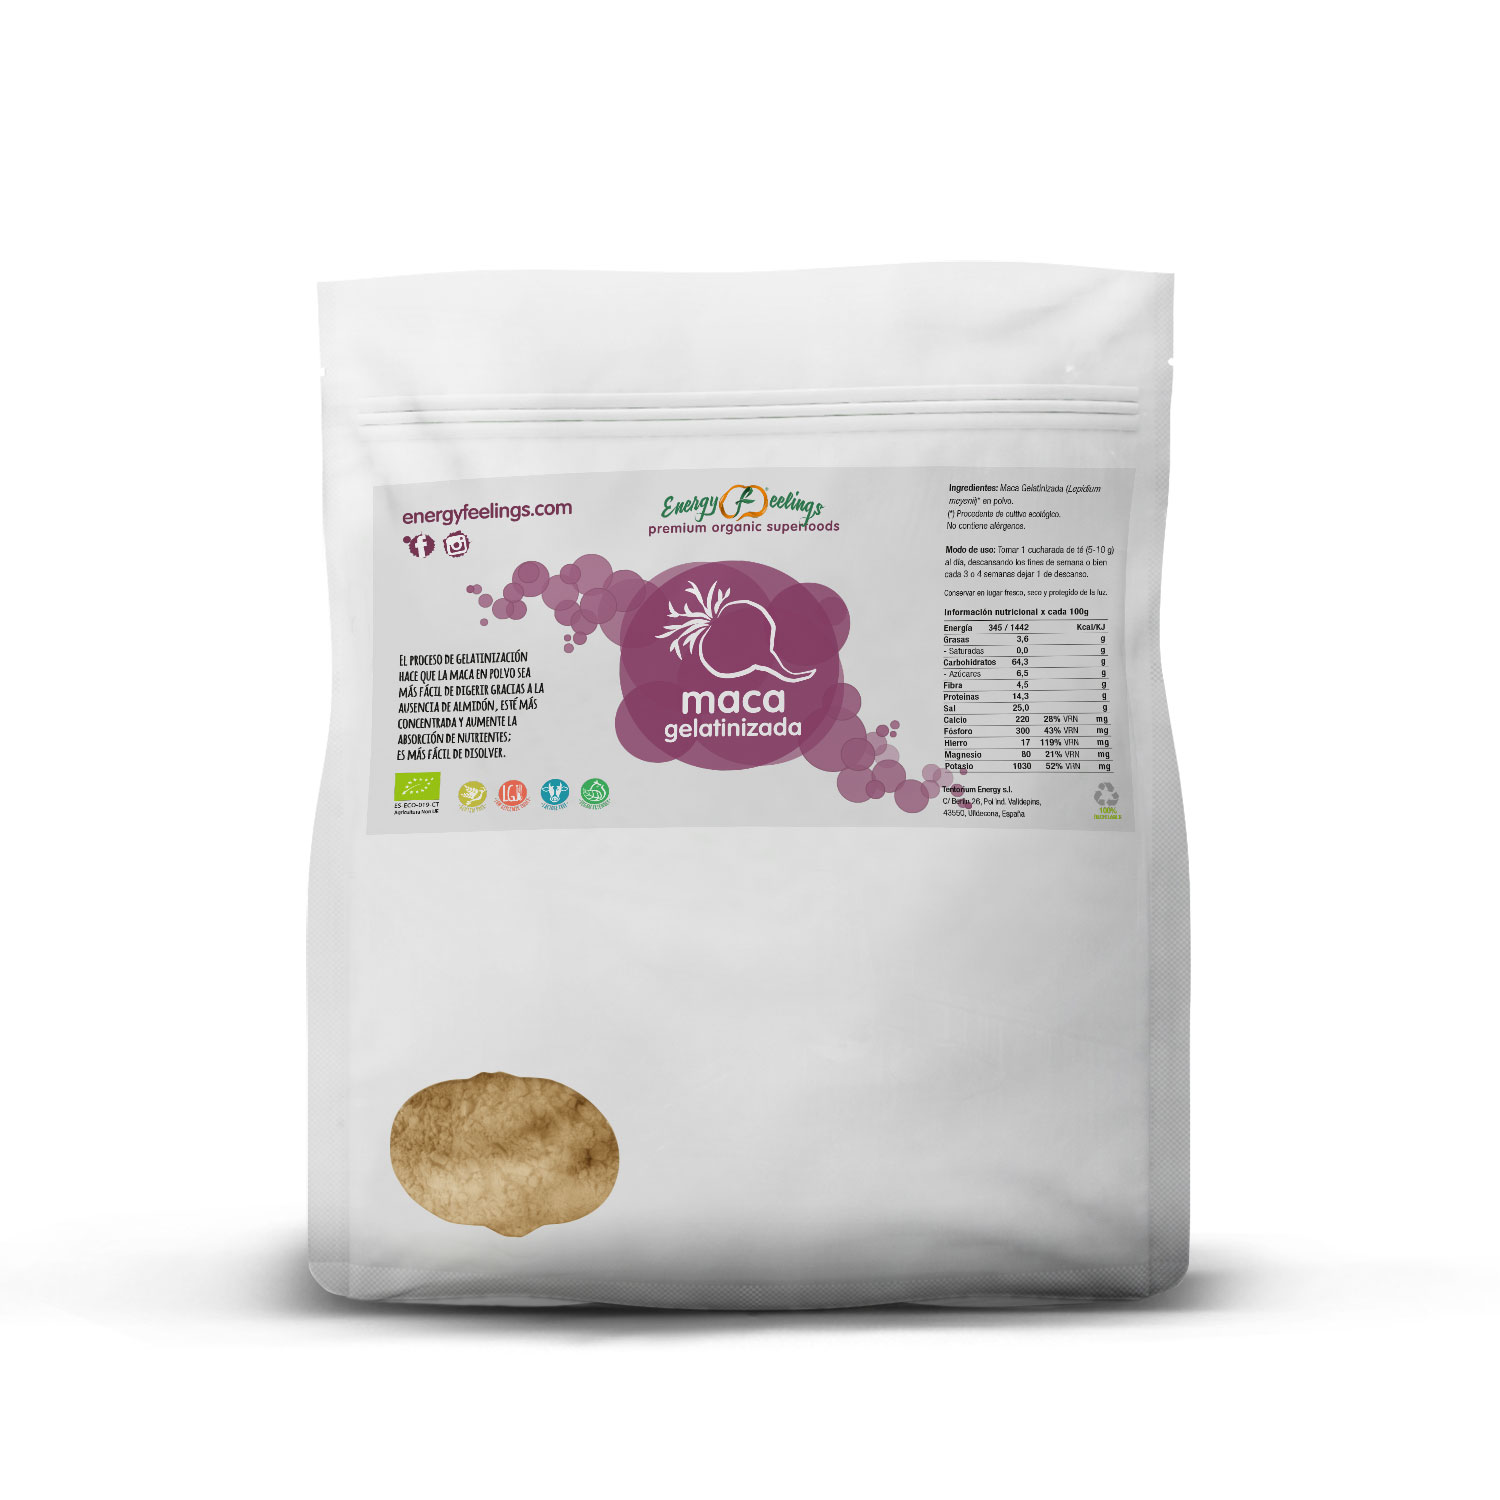 Energy Feelings, MACA gelatinized organic powder, 500 g